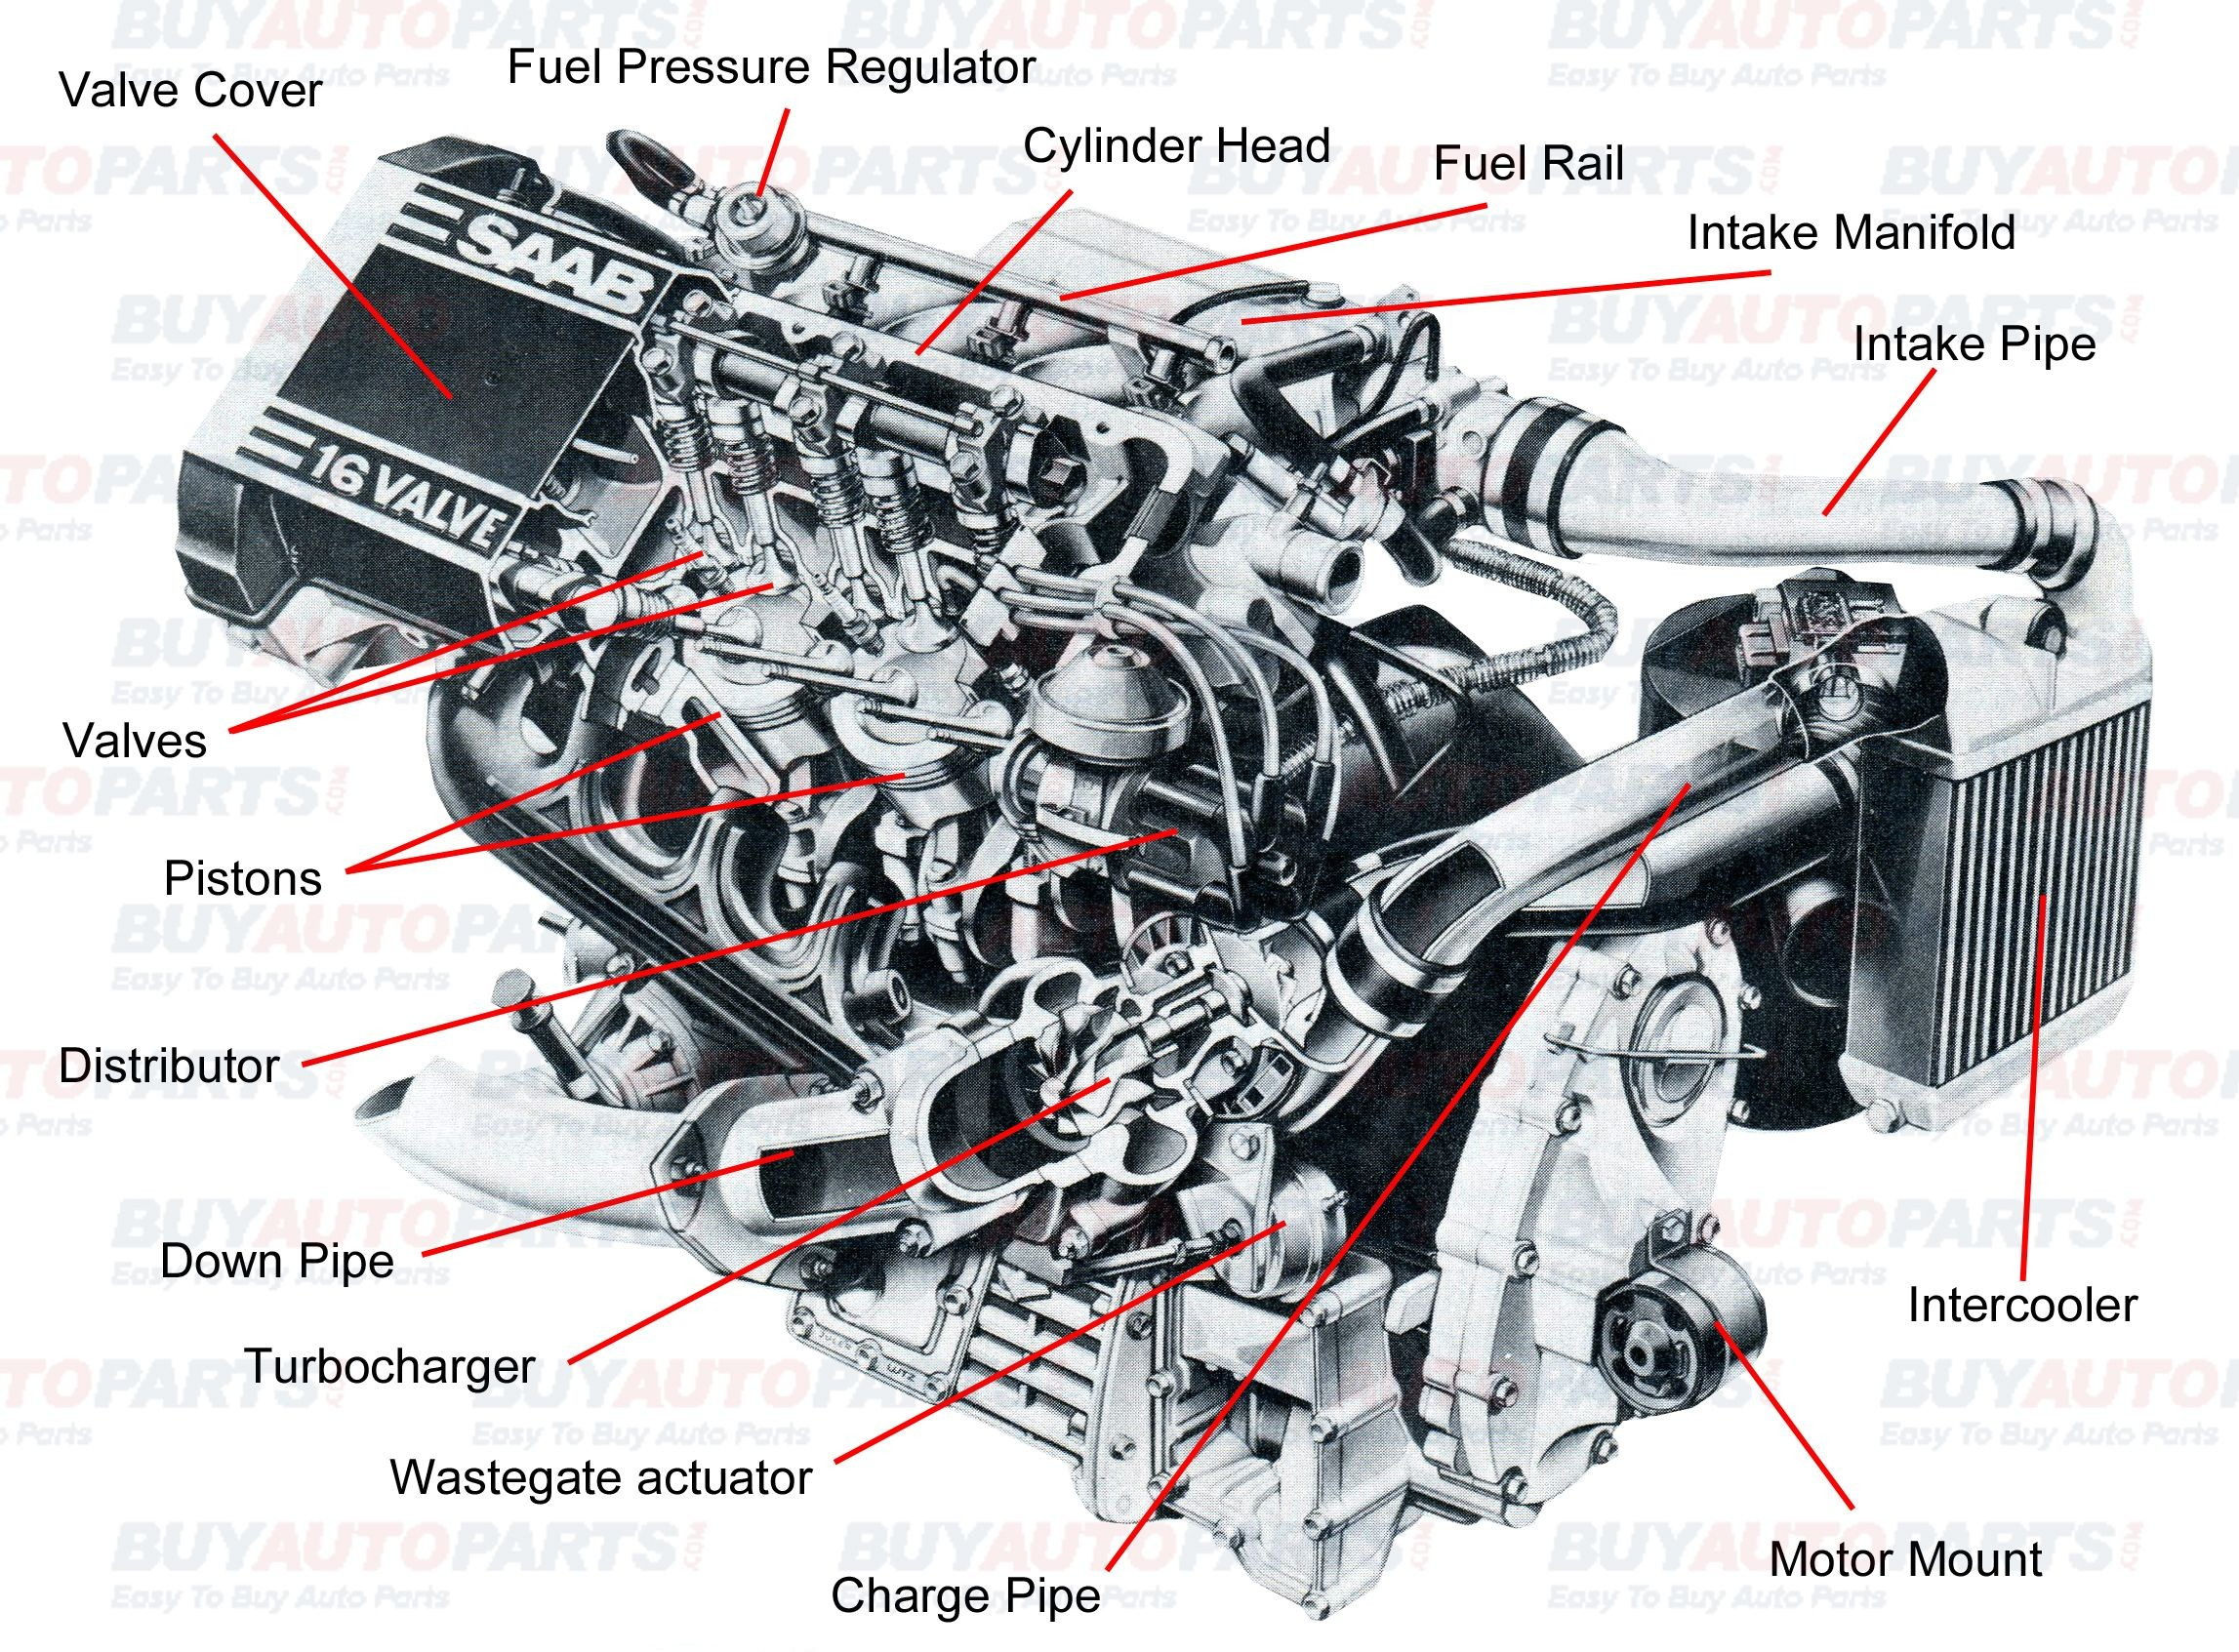 Flathead Engine Diagram 8 Flat Head Get Free Image Vr6 Mount All Internal Bustion Engines Have The Same Basic Ponents Of